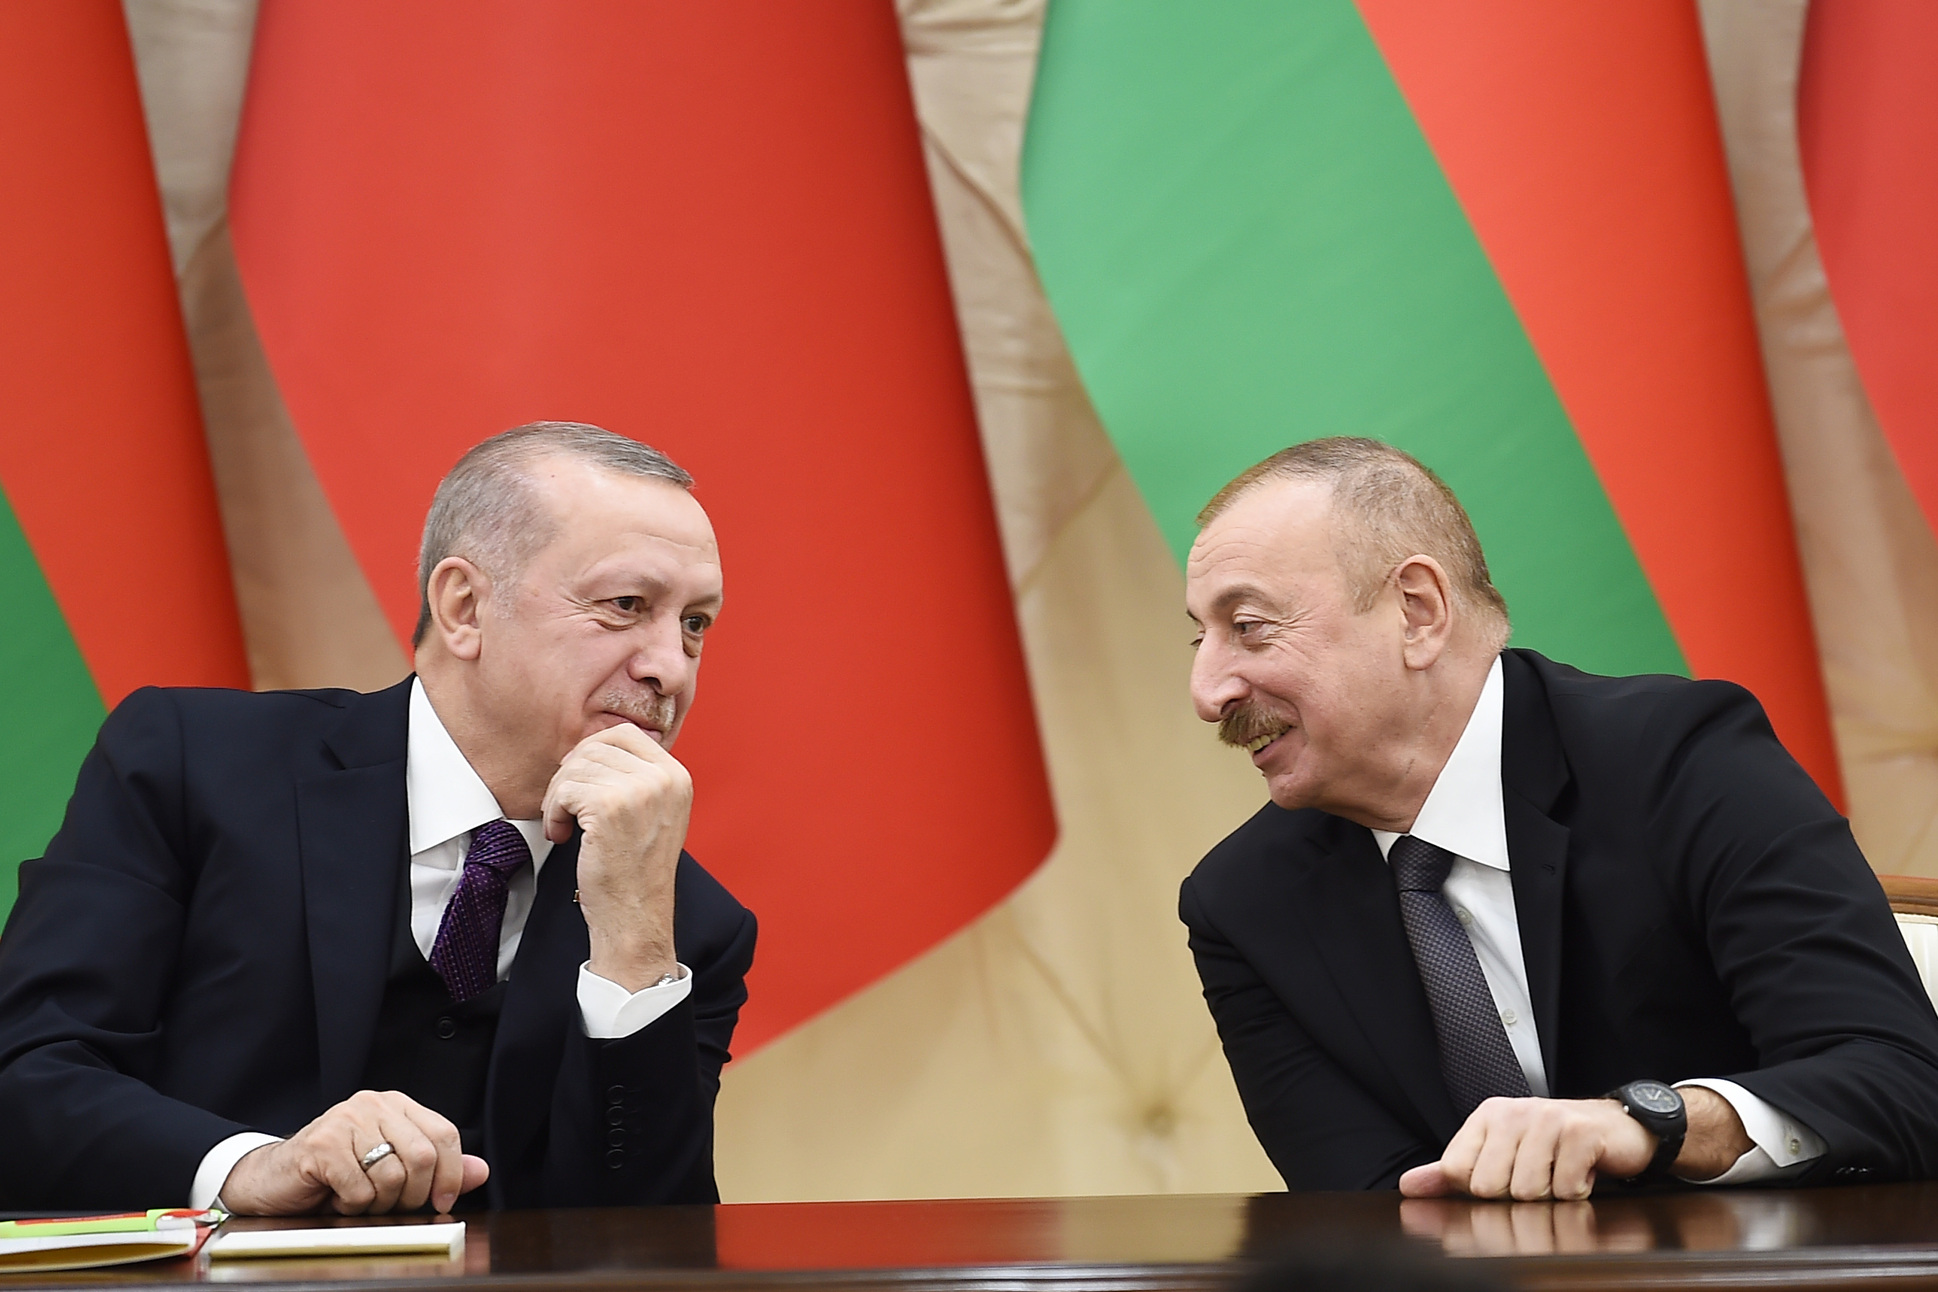 Photo: President Ilham Aliyev of Azerbaijan (right) signs a bilateral agreements with President Recep Tayyip Erdoğan of Turkey, February 25, 2020. Credit: President Administration of Azerbaijan